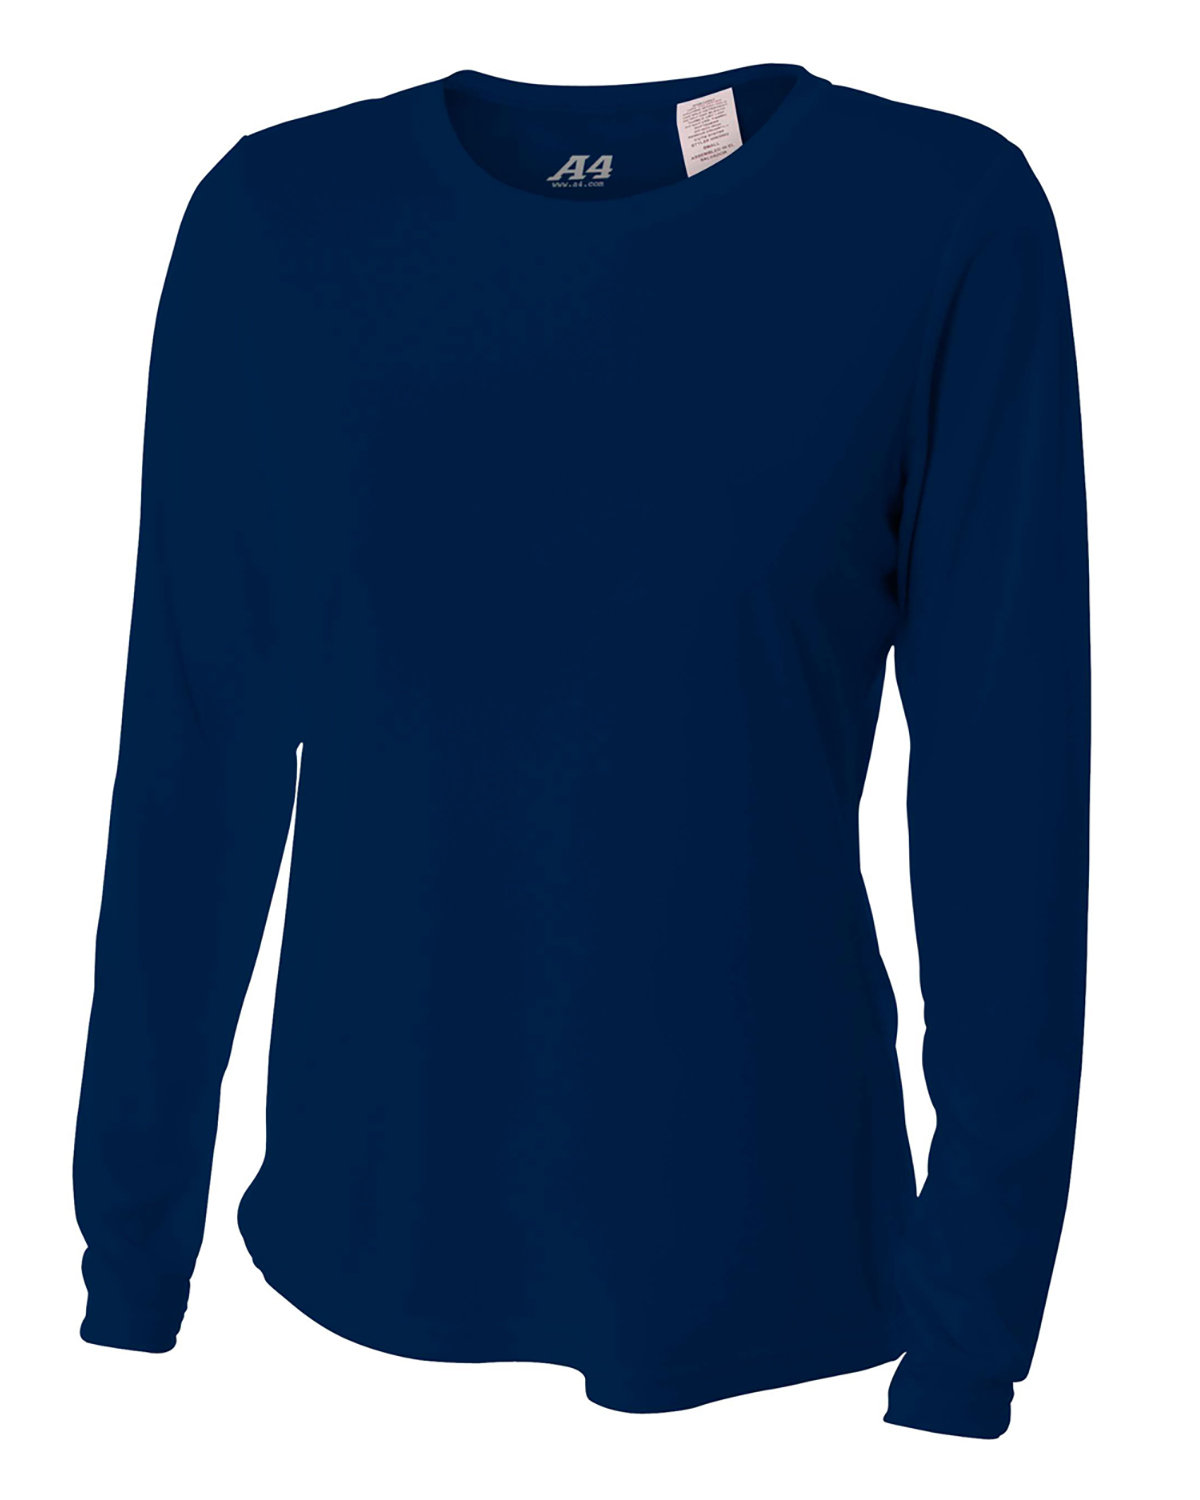 A4 Ladies' Long Sleeve Cooling Performance Crew Shirt NAVY